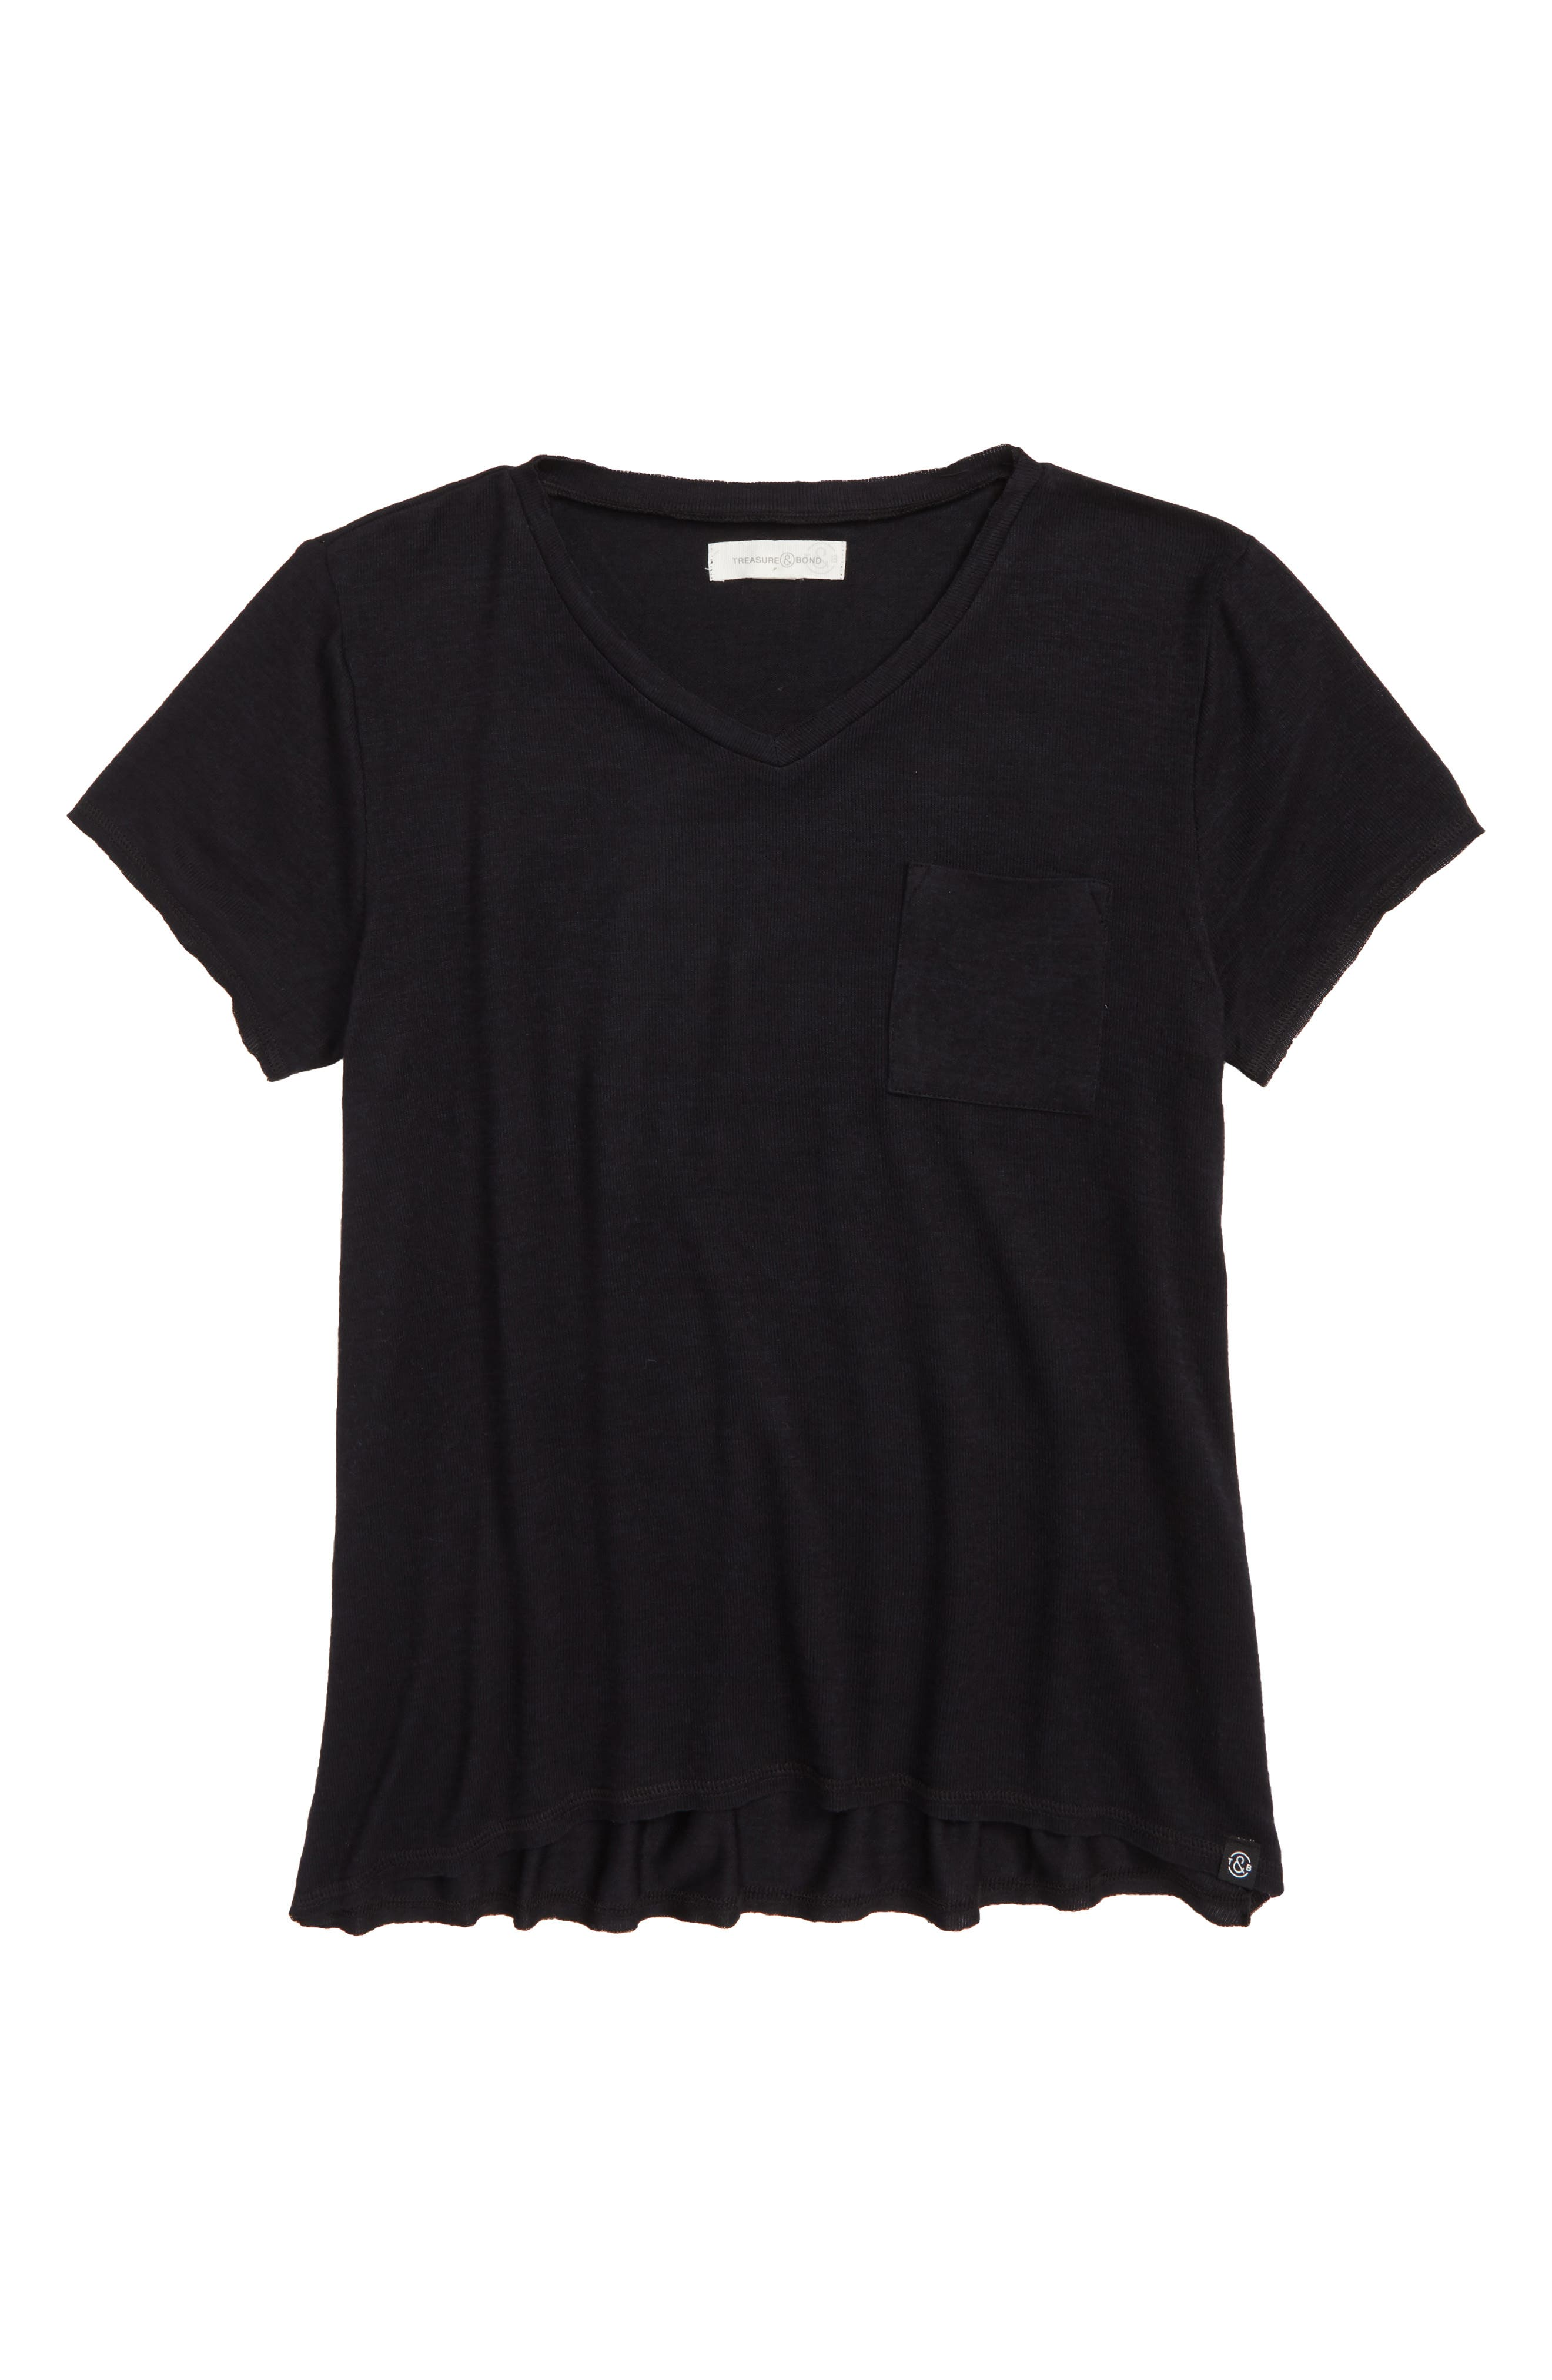 Oversized Pocket Tee,                             Main thumbnail 1, color,                             BLACK ROCK